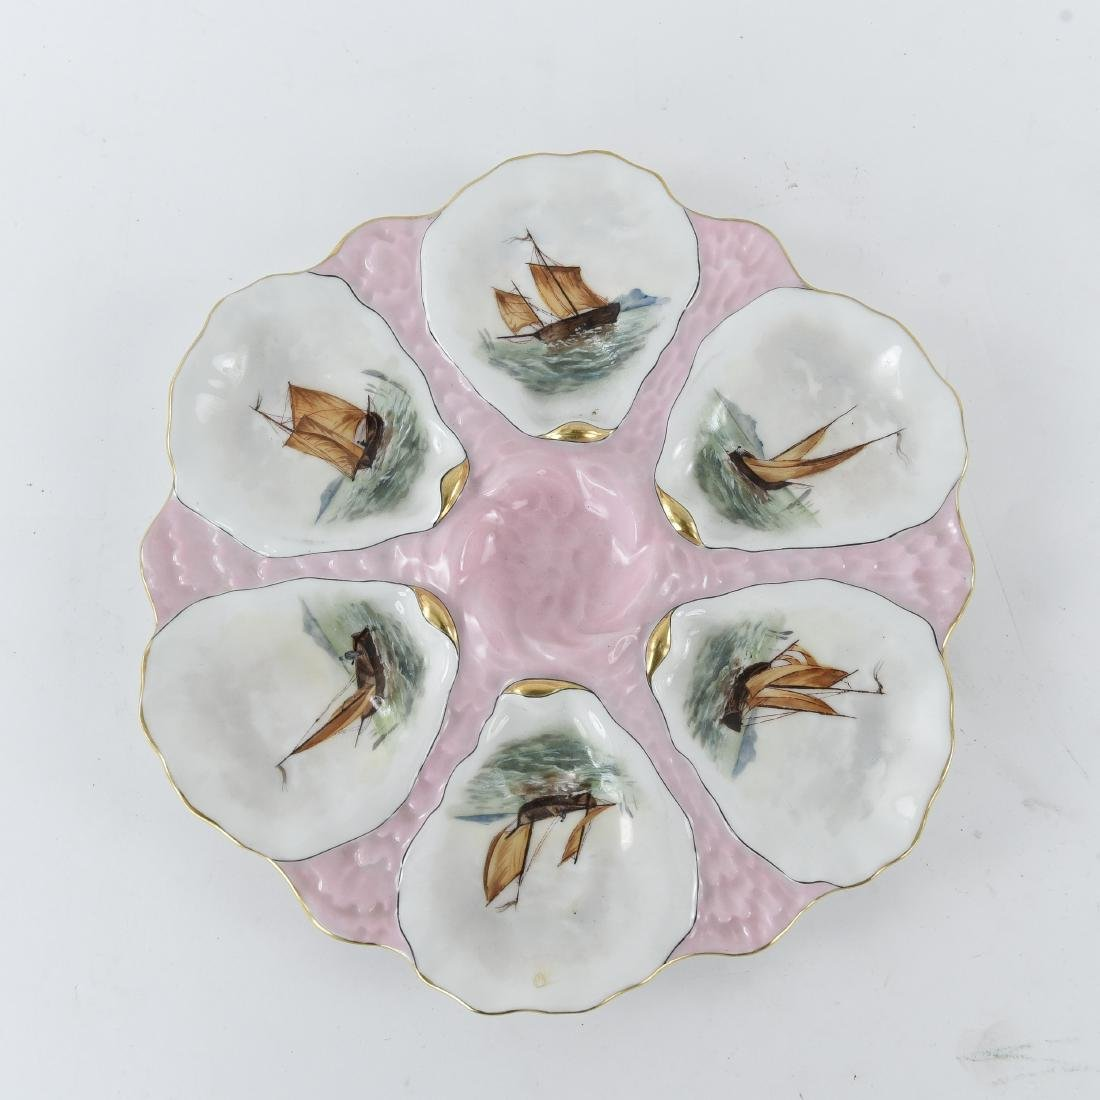 19TH C. FRENCH PORCELAIN OYSTER PLATE